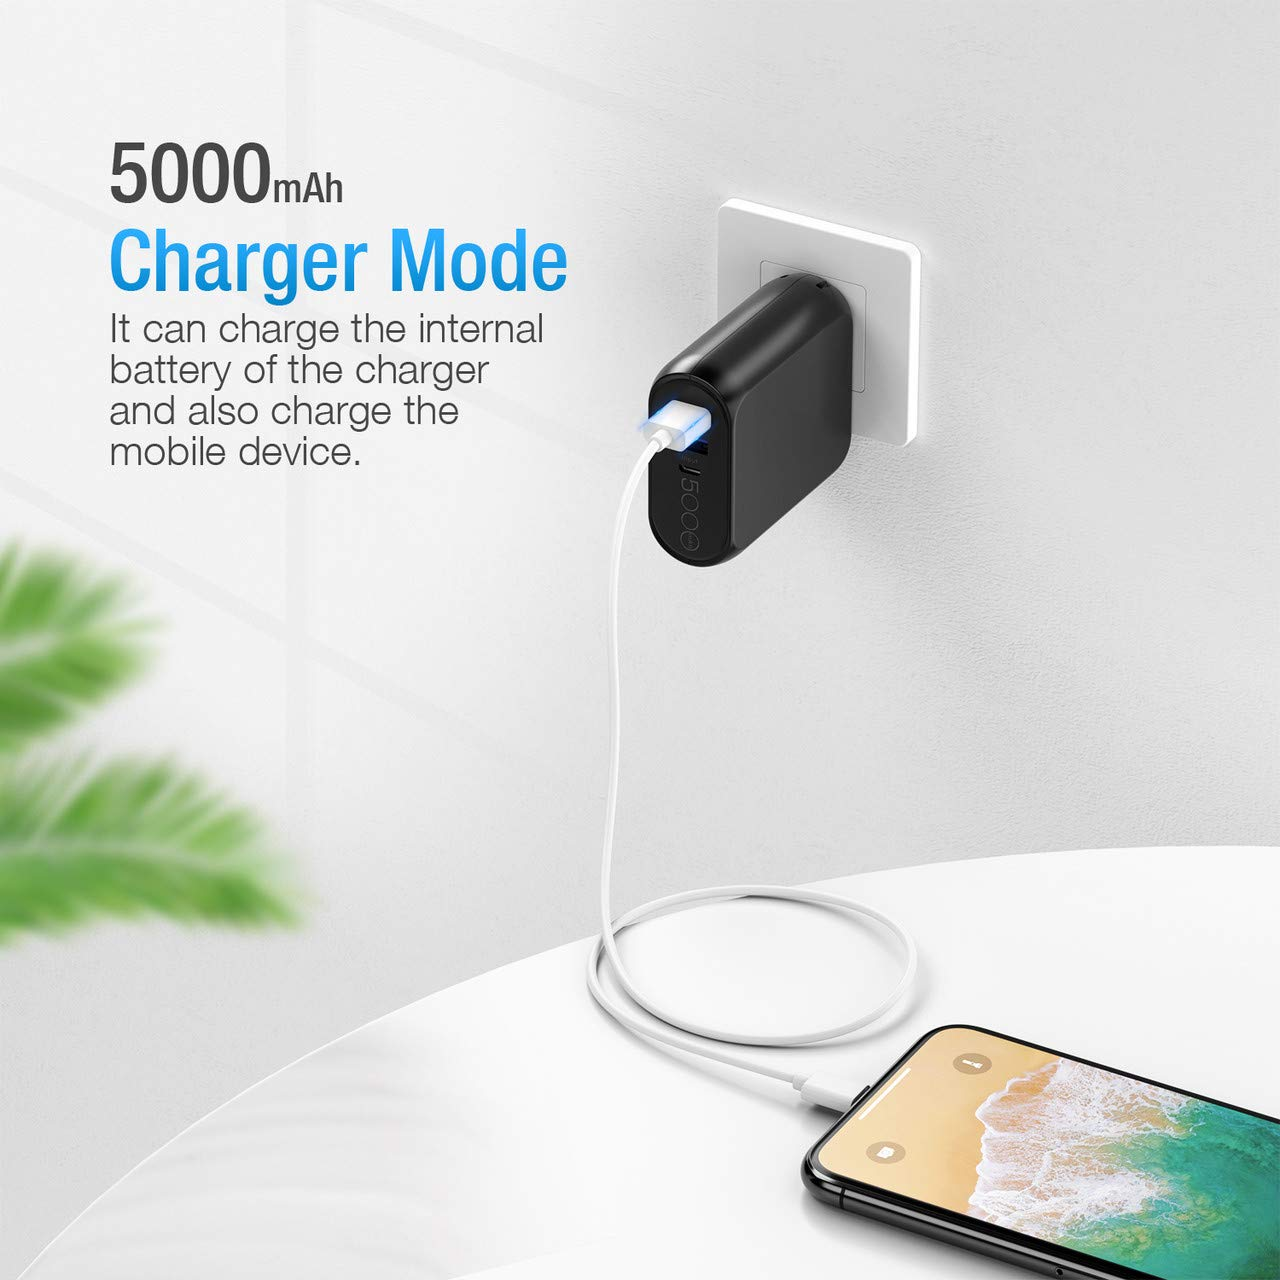 Samsung and More Poweradd EnergyCell AC 5000mAh 2-in-1 Portable Wall Charger and Power Bank Compatible with iPhone Android iPad AC Plug with 5000mAh Capacity